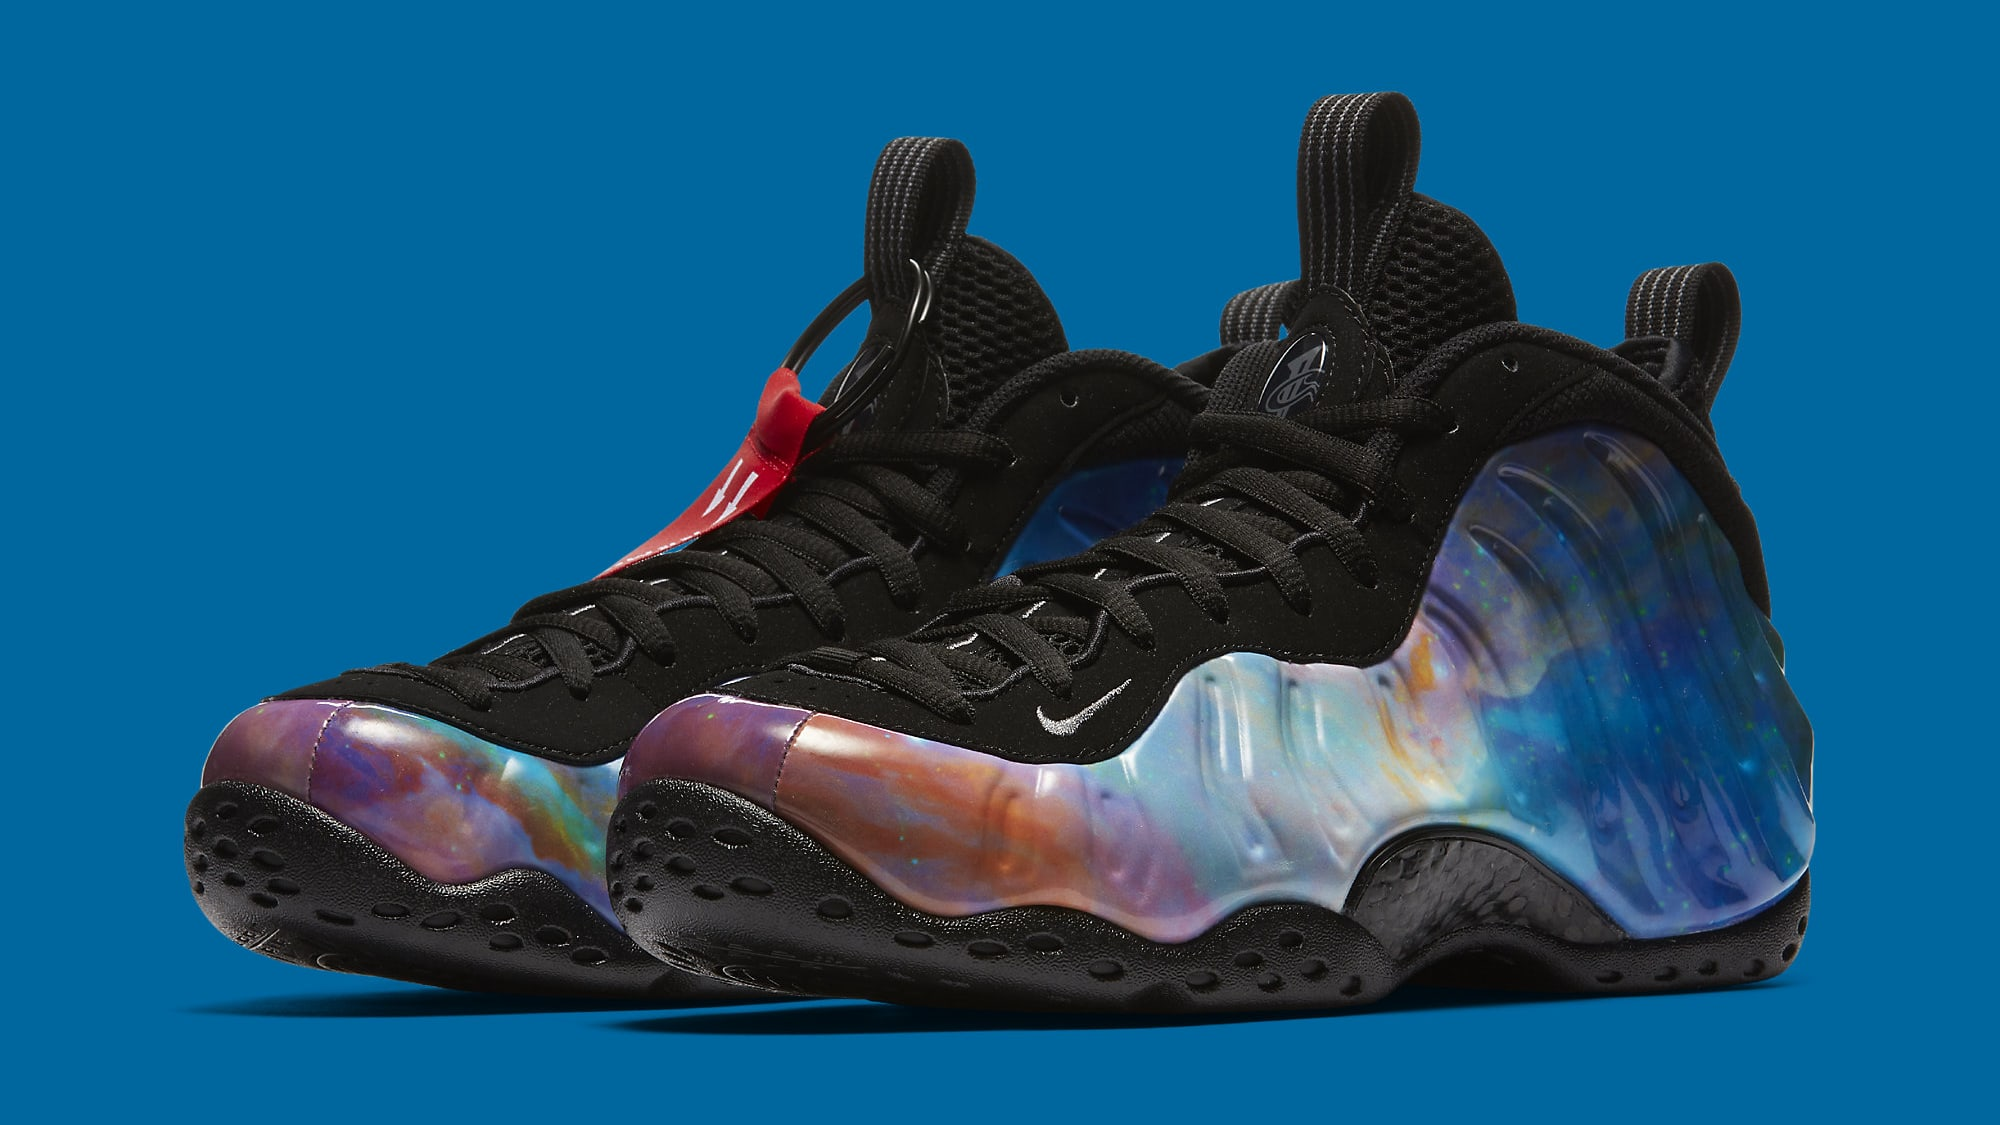 Buy Original Nike Air Foam Posite For Women in OF3gLzUD